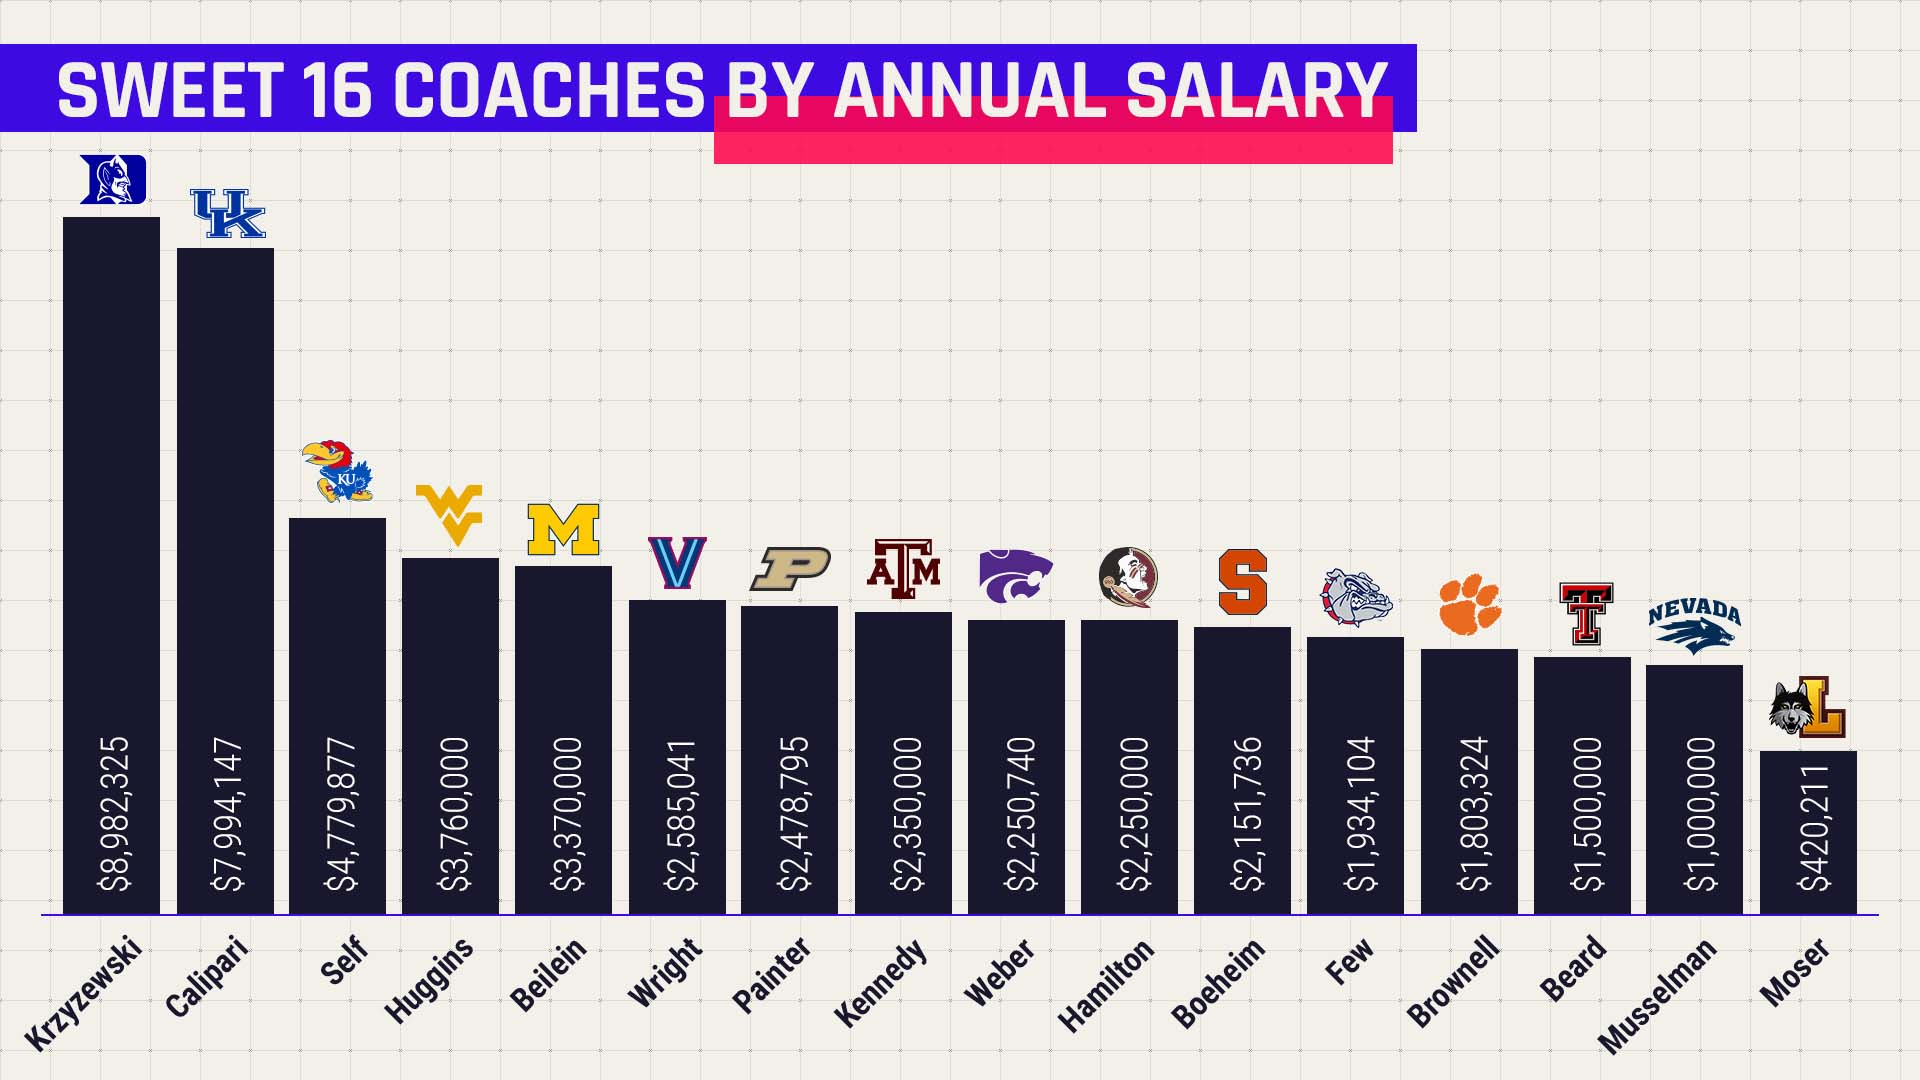 Sweet 16 coaches salary